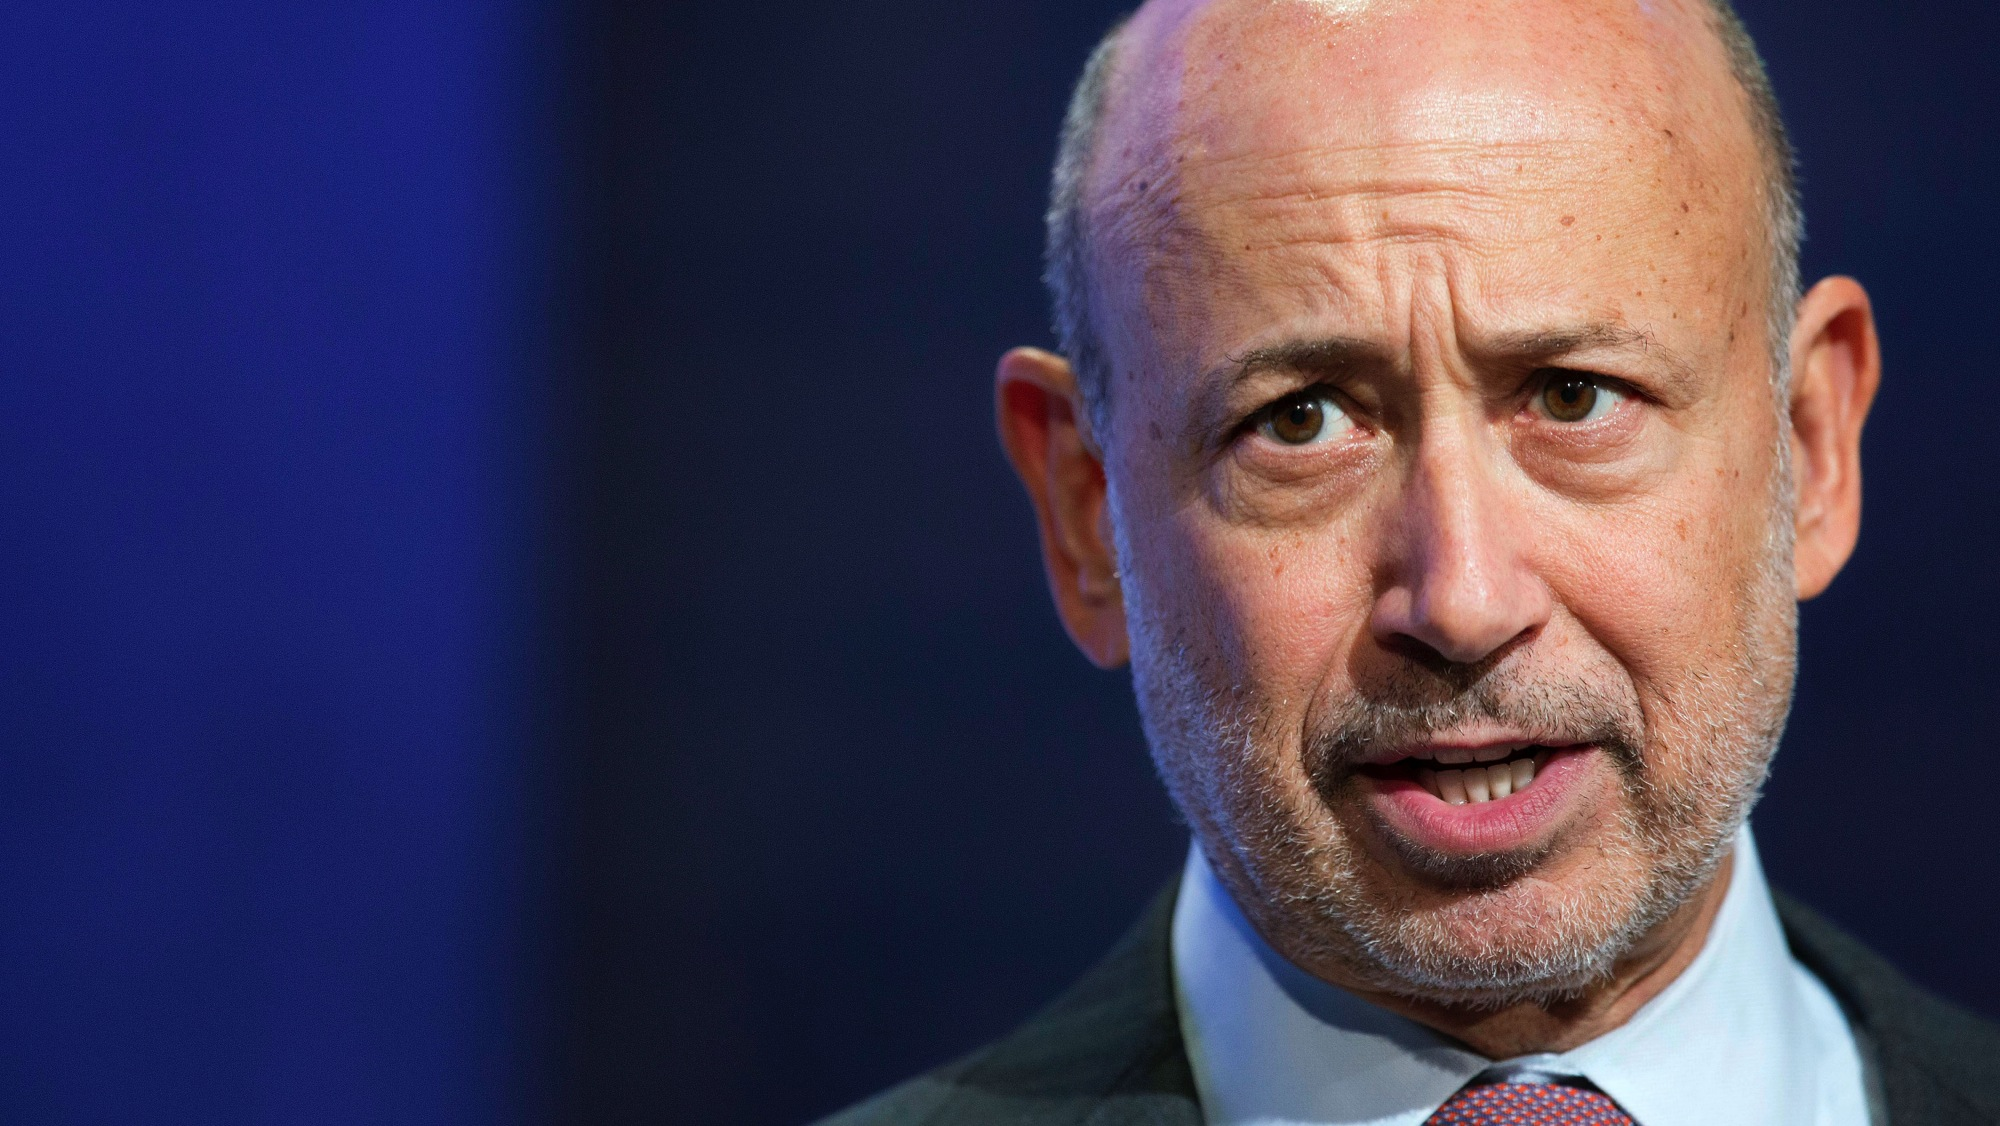 FILE - In this Sept. 24, 2014 file photo, Lloyd Blankfein, Chairman and CEO of Goldman Sachs, speaks during a panel discussion at the Clinton Global Initiative, in New York. The Goldman Sachs Group Inc. releases quarterly results before the market opens Thursday, Oct. 16, 2014.